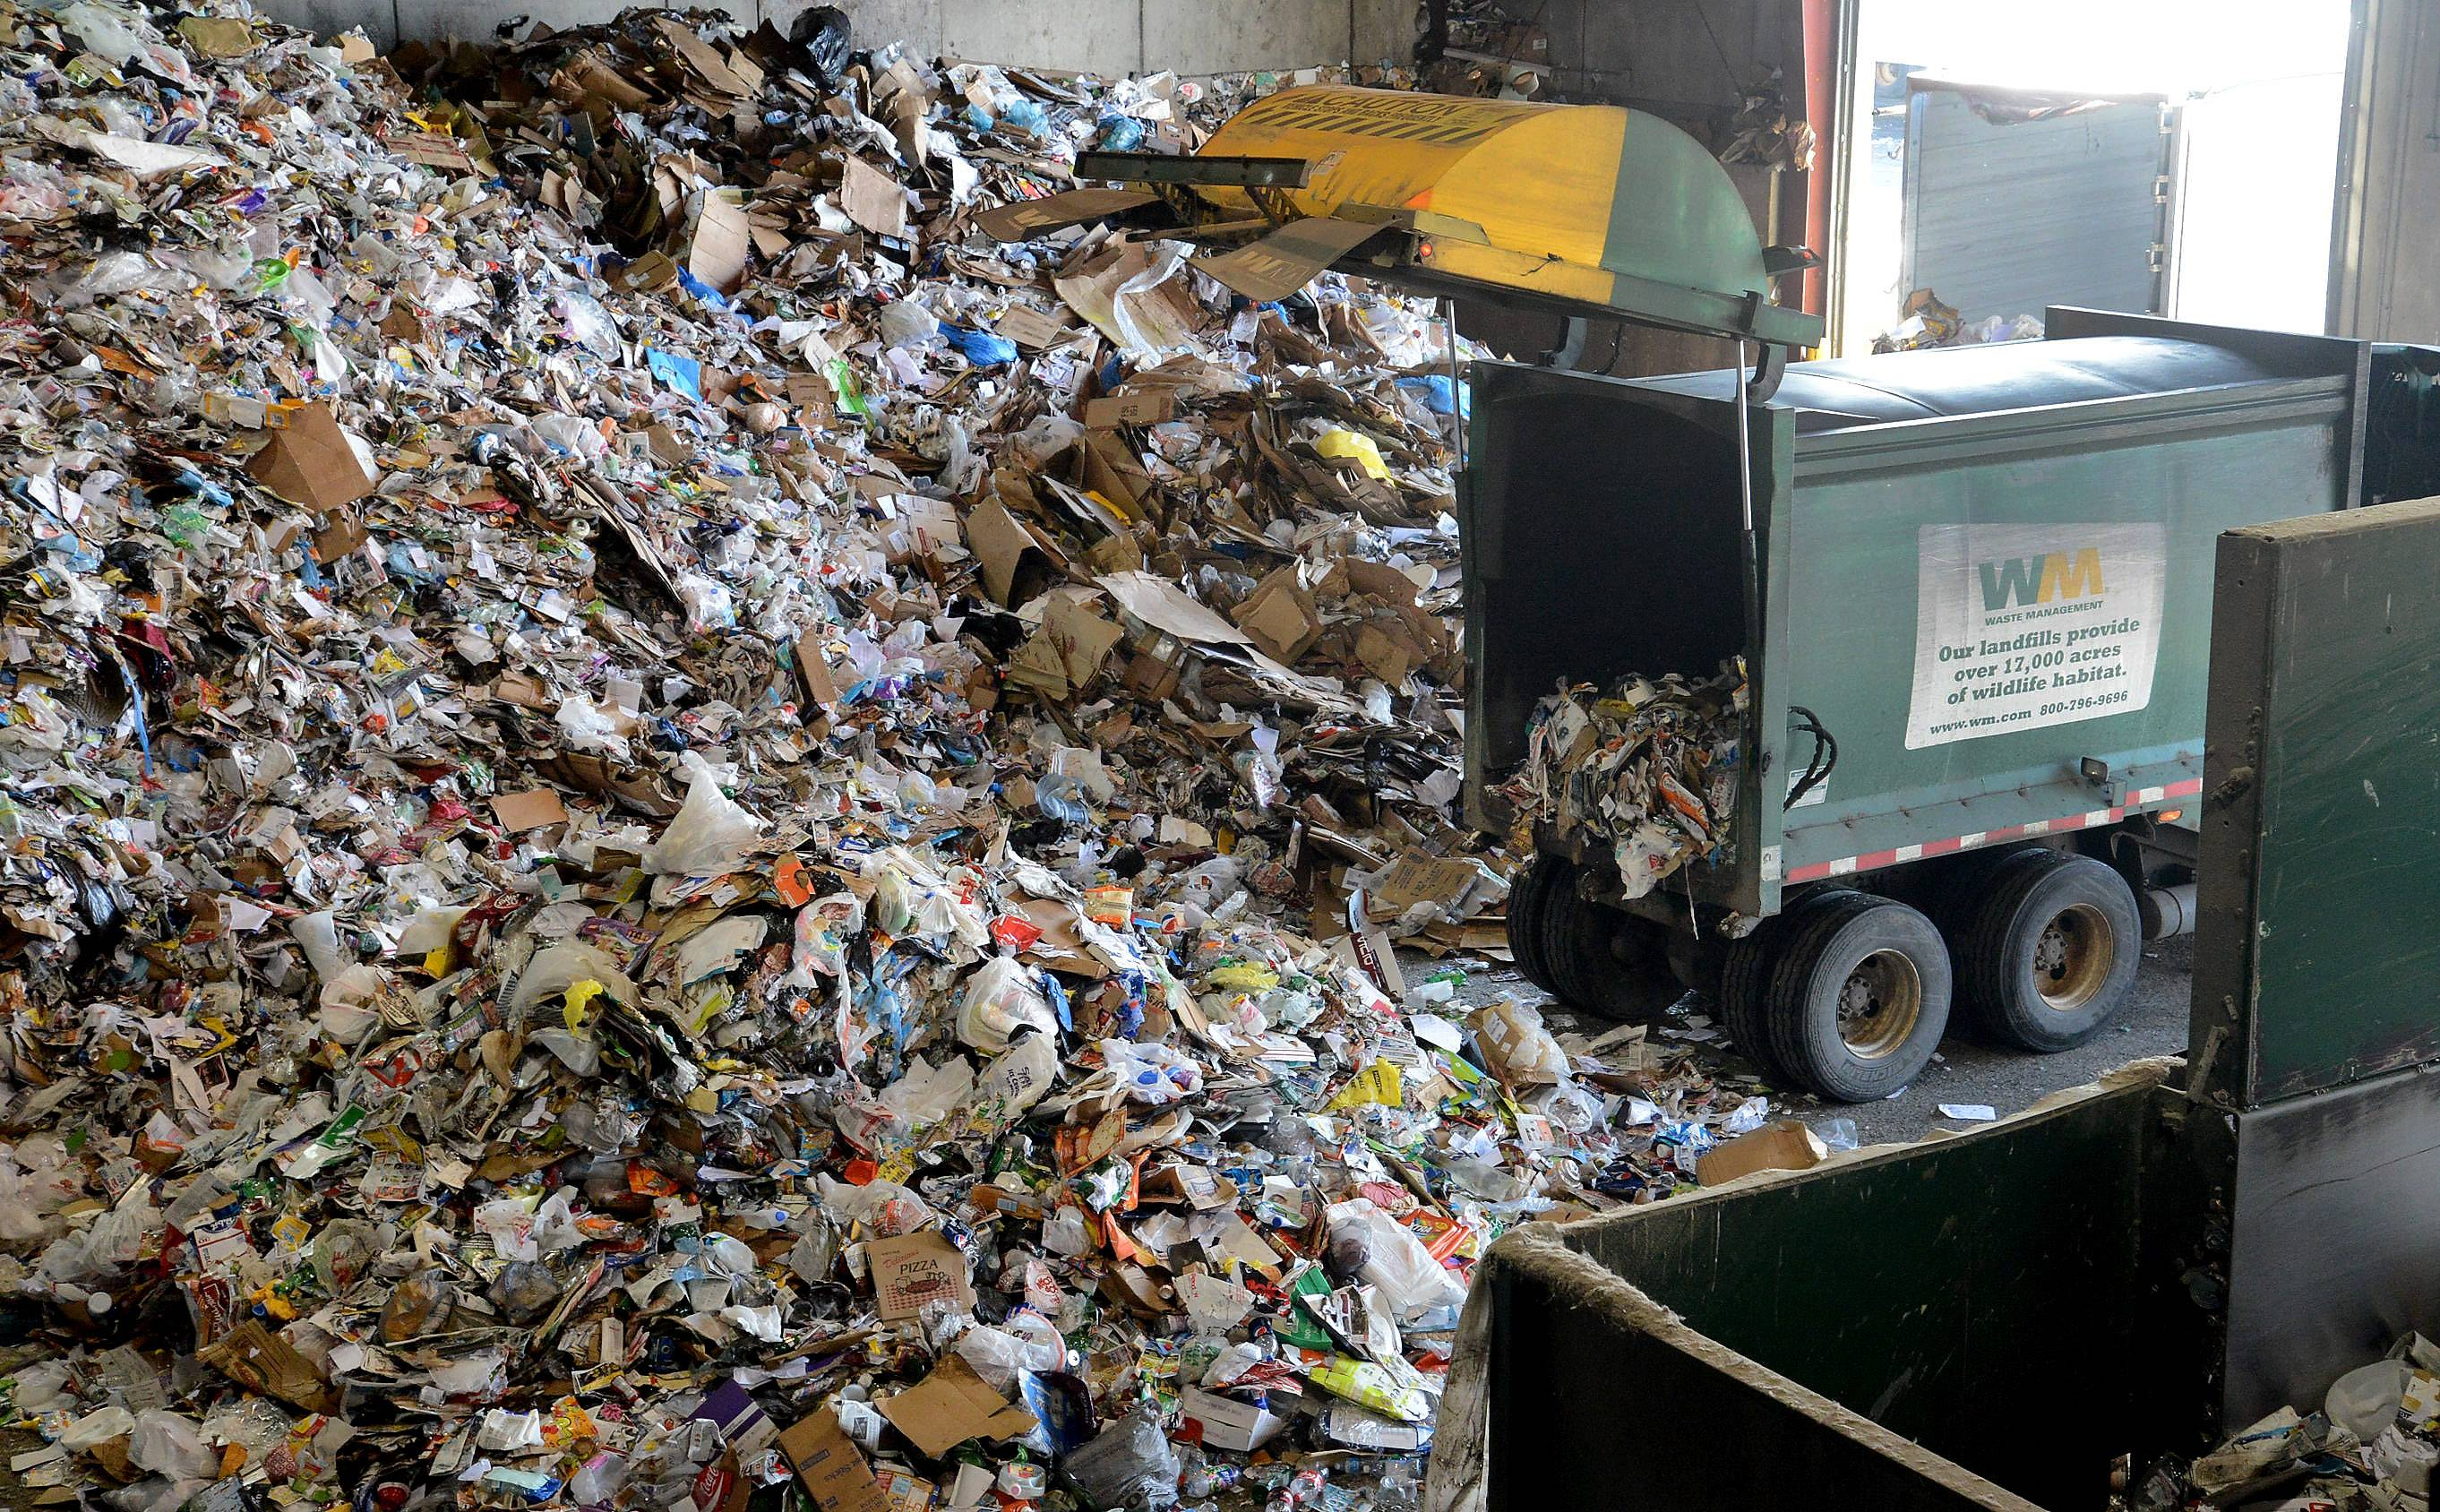 Waste Management's recycling center in Grayslake, where about 12 percent of what workers will sift through is not recyclable. A single-digit figure would be ideal, experts say.